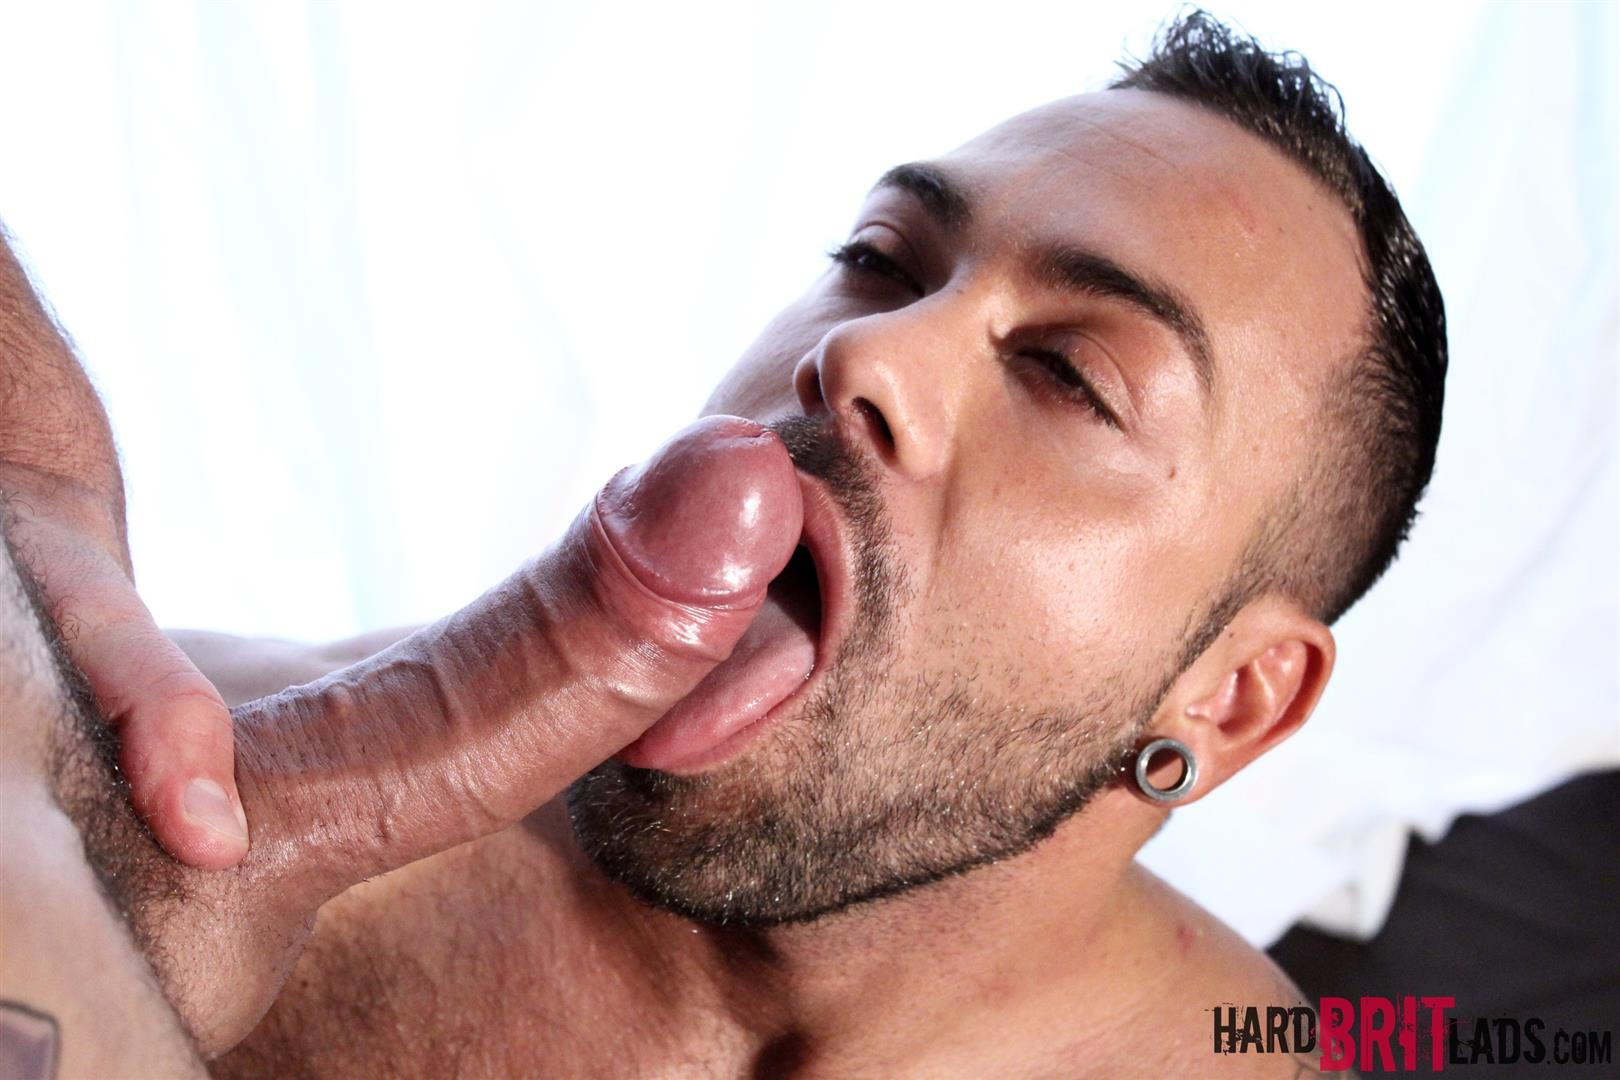 Hard Brit Lads Sergi Rodriguez and Letterio Amadeo Big Uncut Cock Fucking Amateur Gay Porn 06 Hairy British Muscle Hunks Fucking With Their Big Uncut Cocks